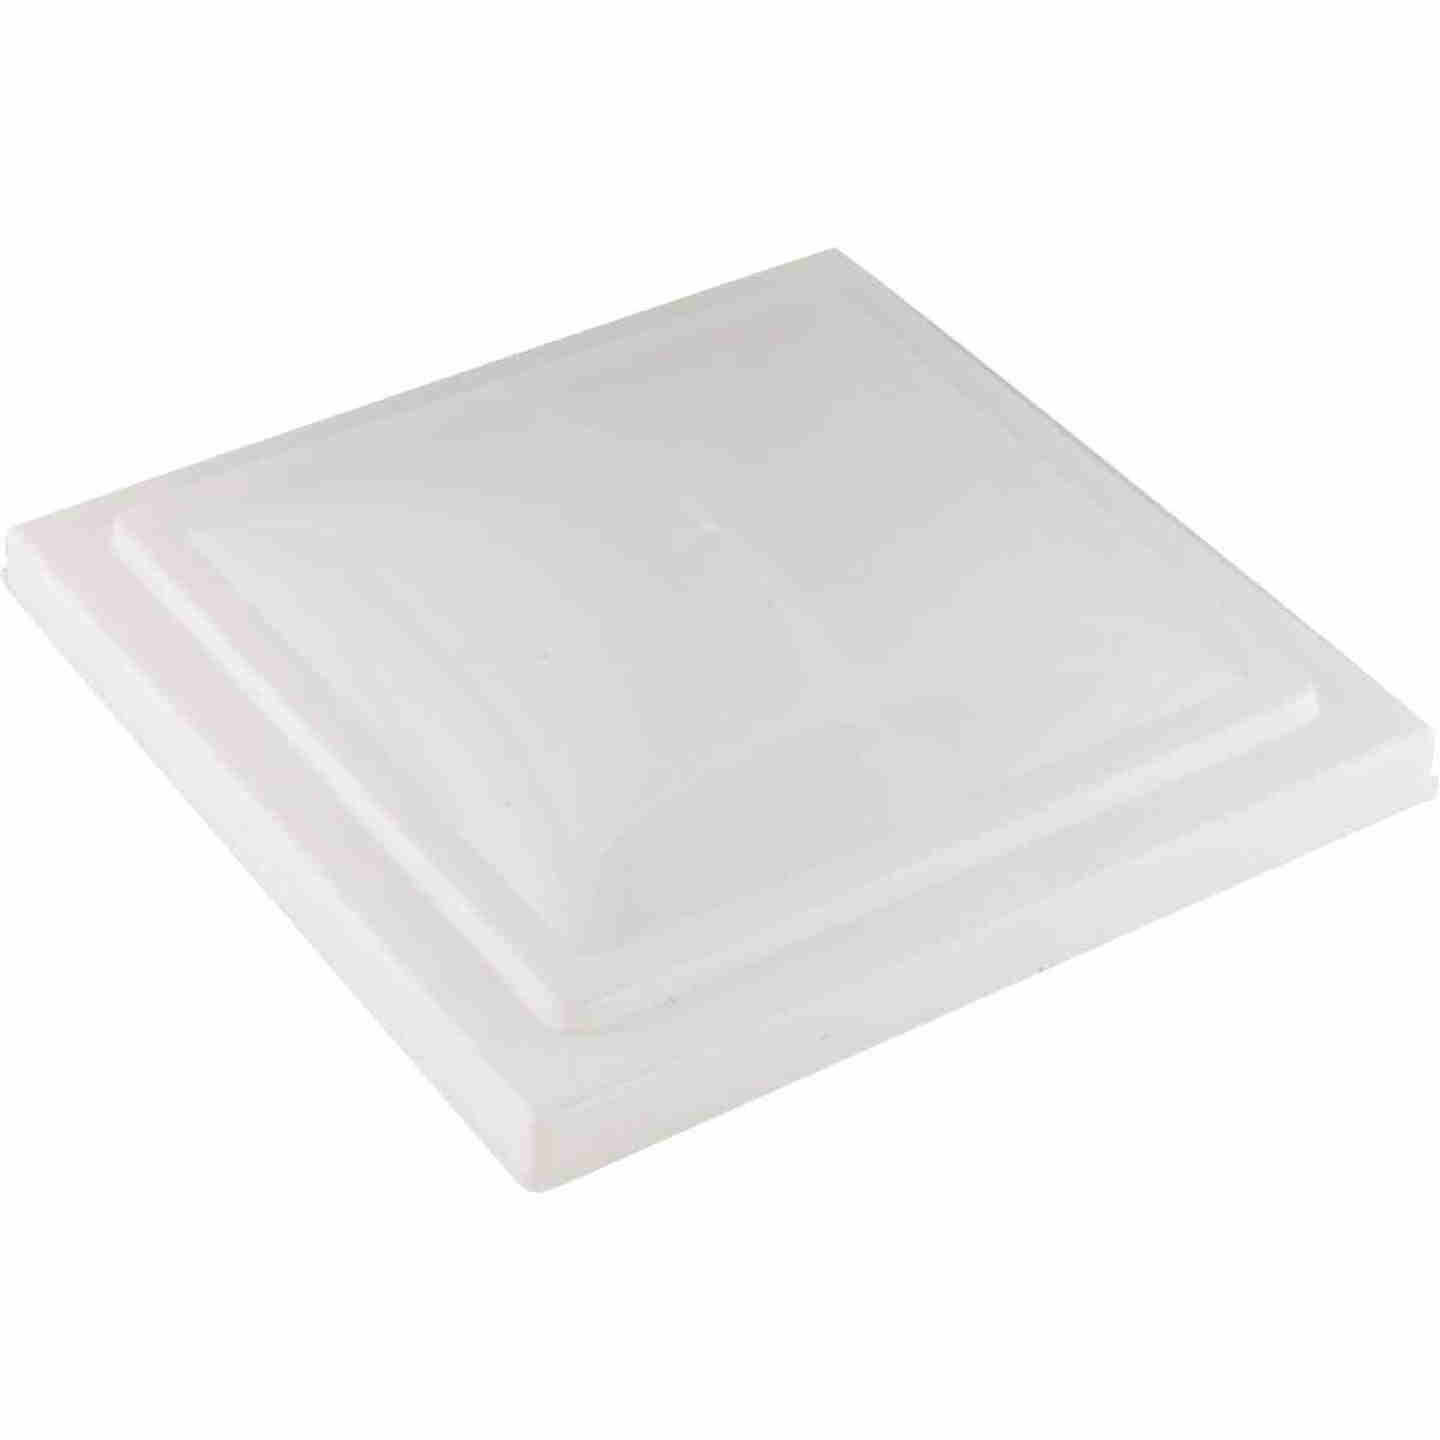 Camco 14 In. x 14 In. Poly Impact-resistant RV Vent Lid Image 1